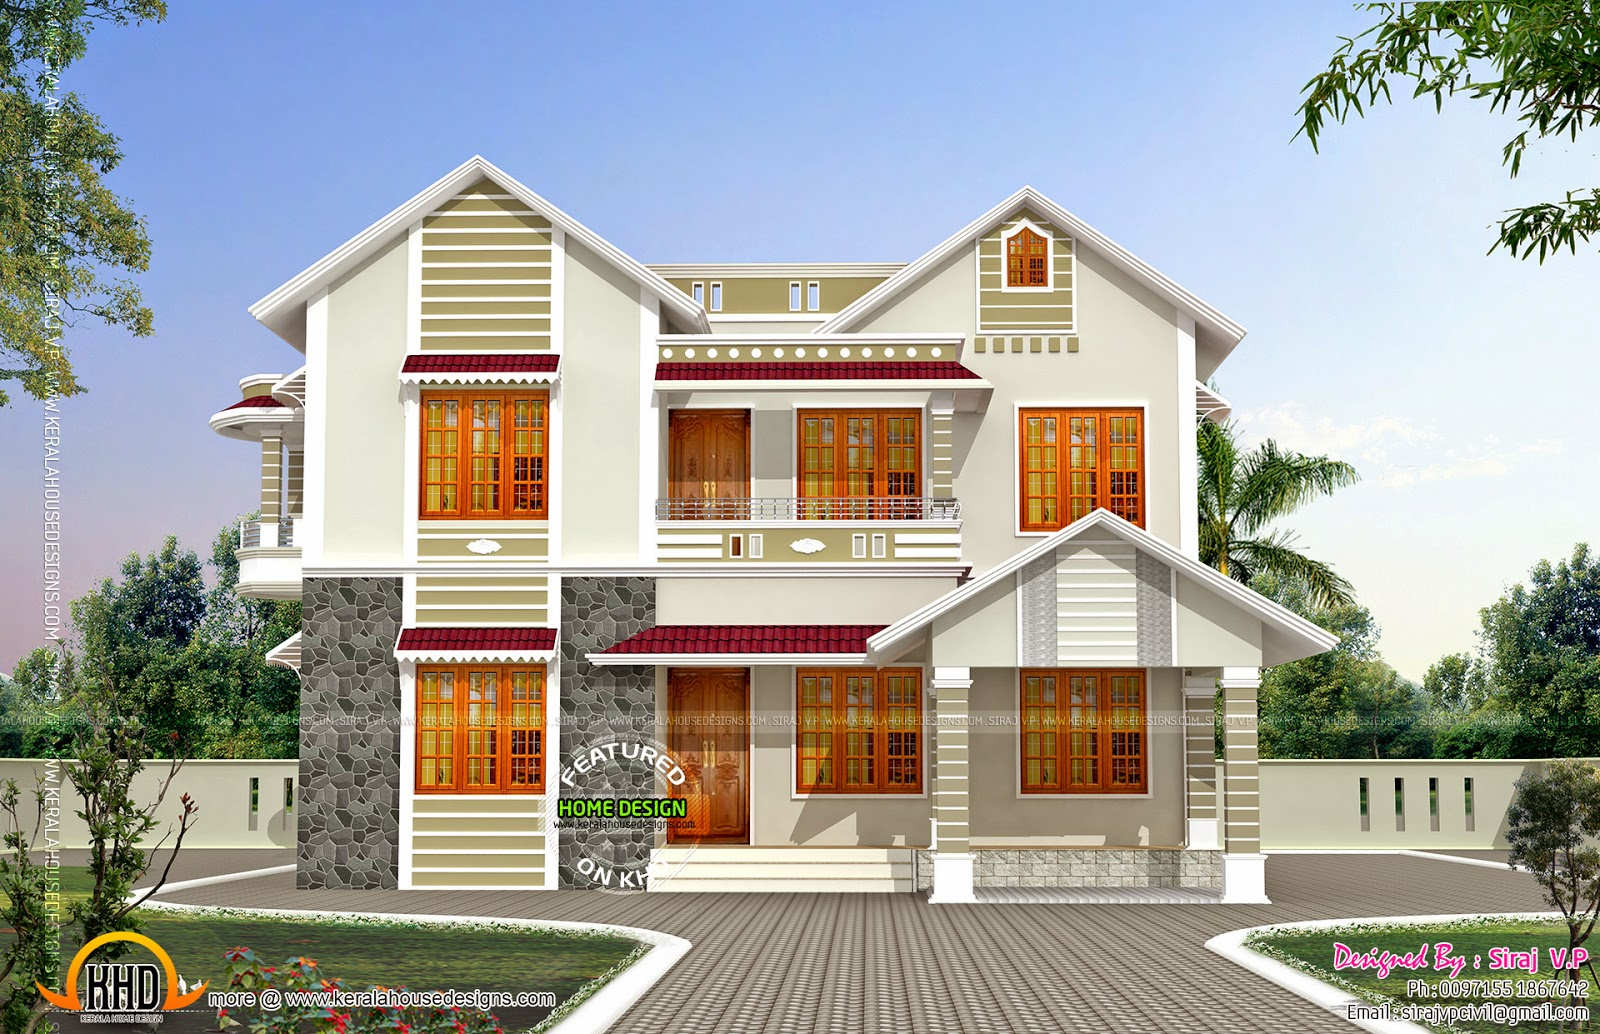 Image gallery home design front view for Home design front side